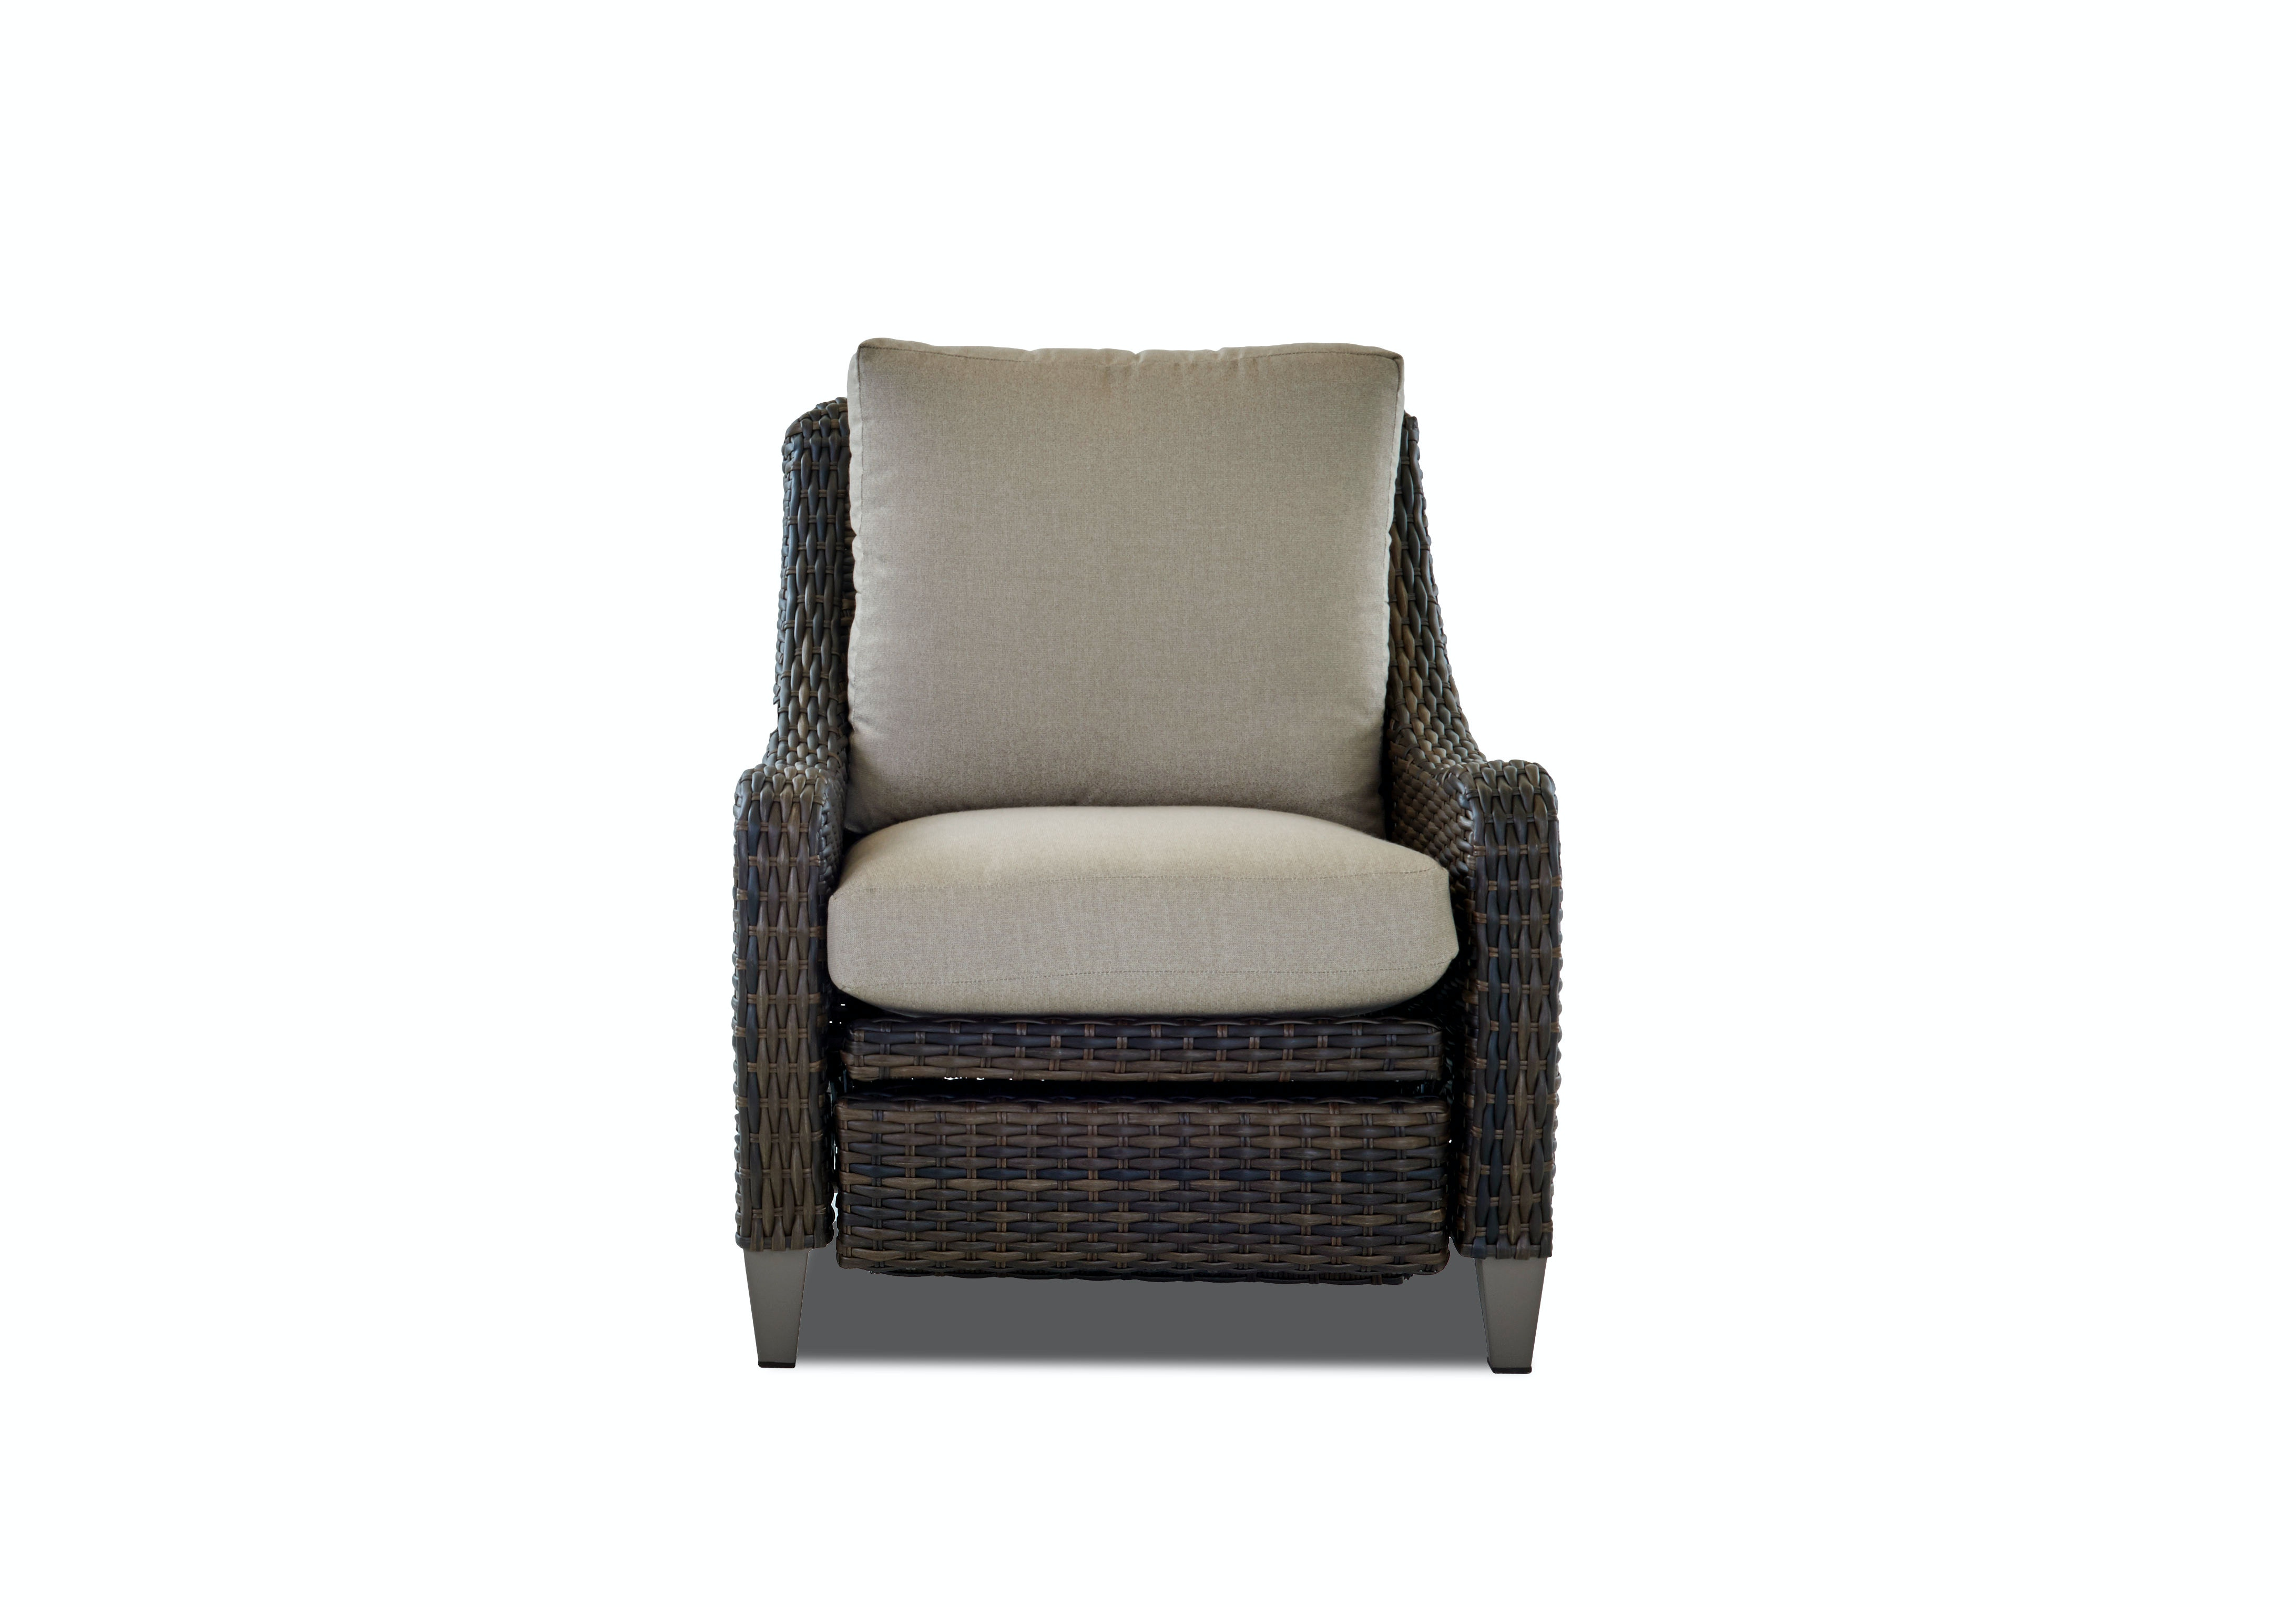 Klaussner Outdoor Mesa Reclining Chair W7502 HLRC